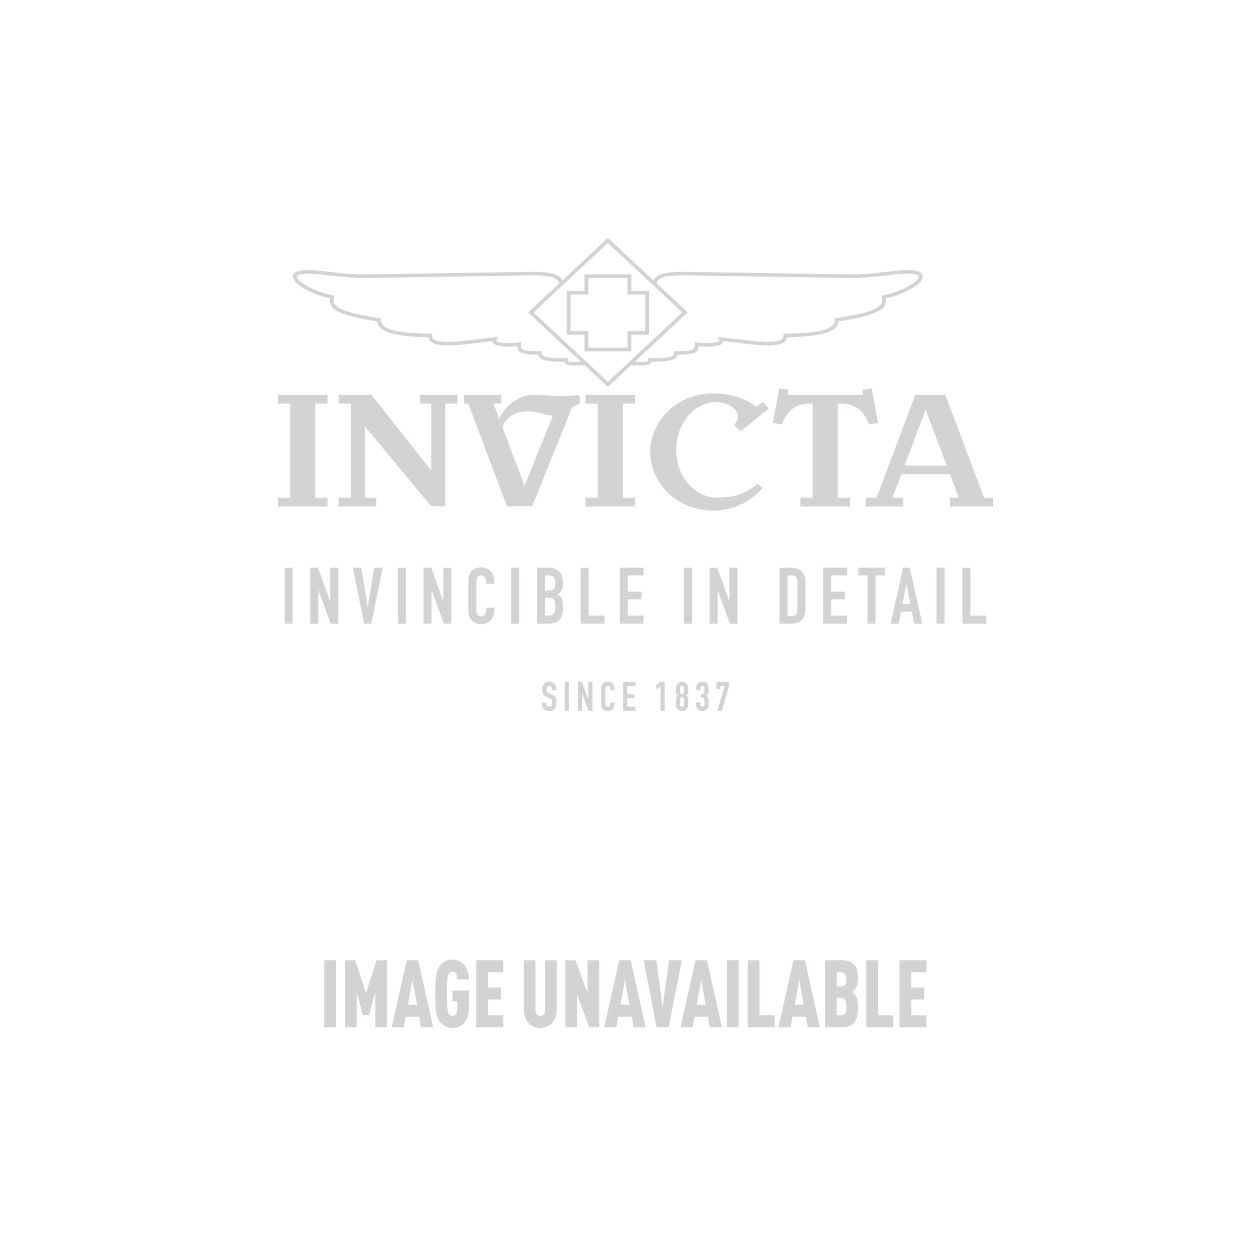 Invicta Specialty Quartz Watch - Black, Stainless Steel case Stainless Steel band - Model 17439